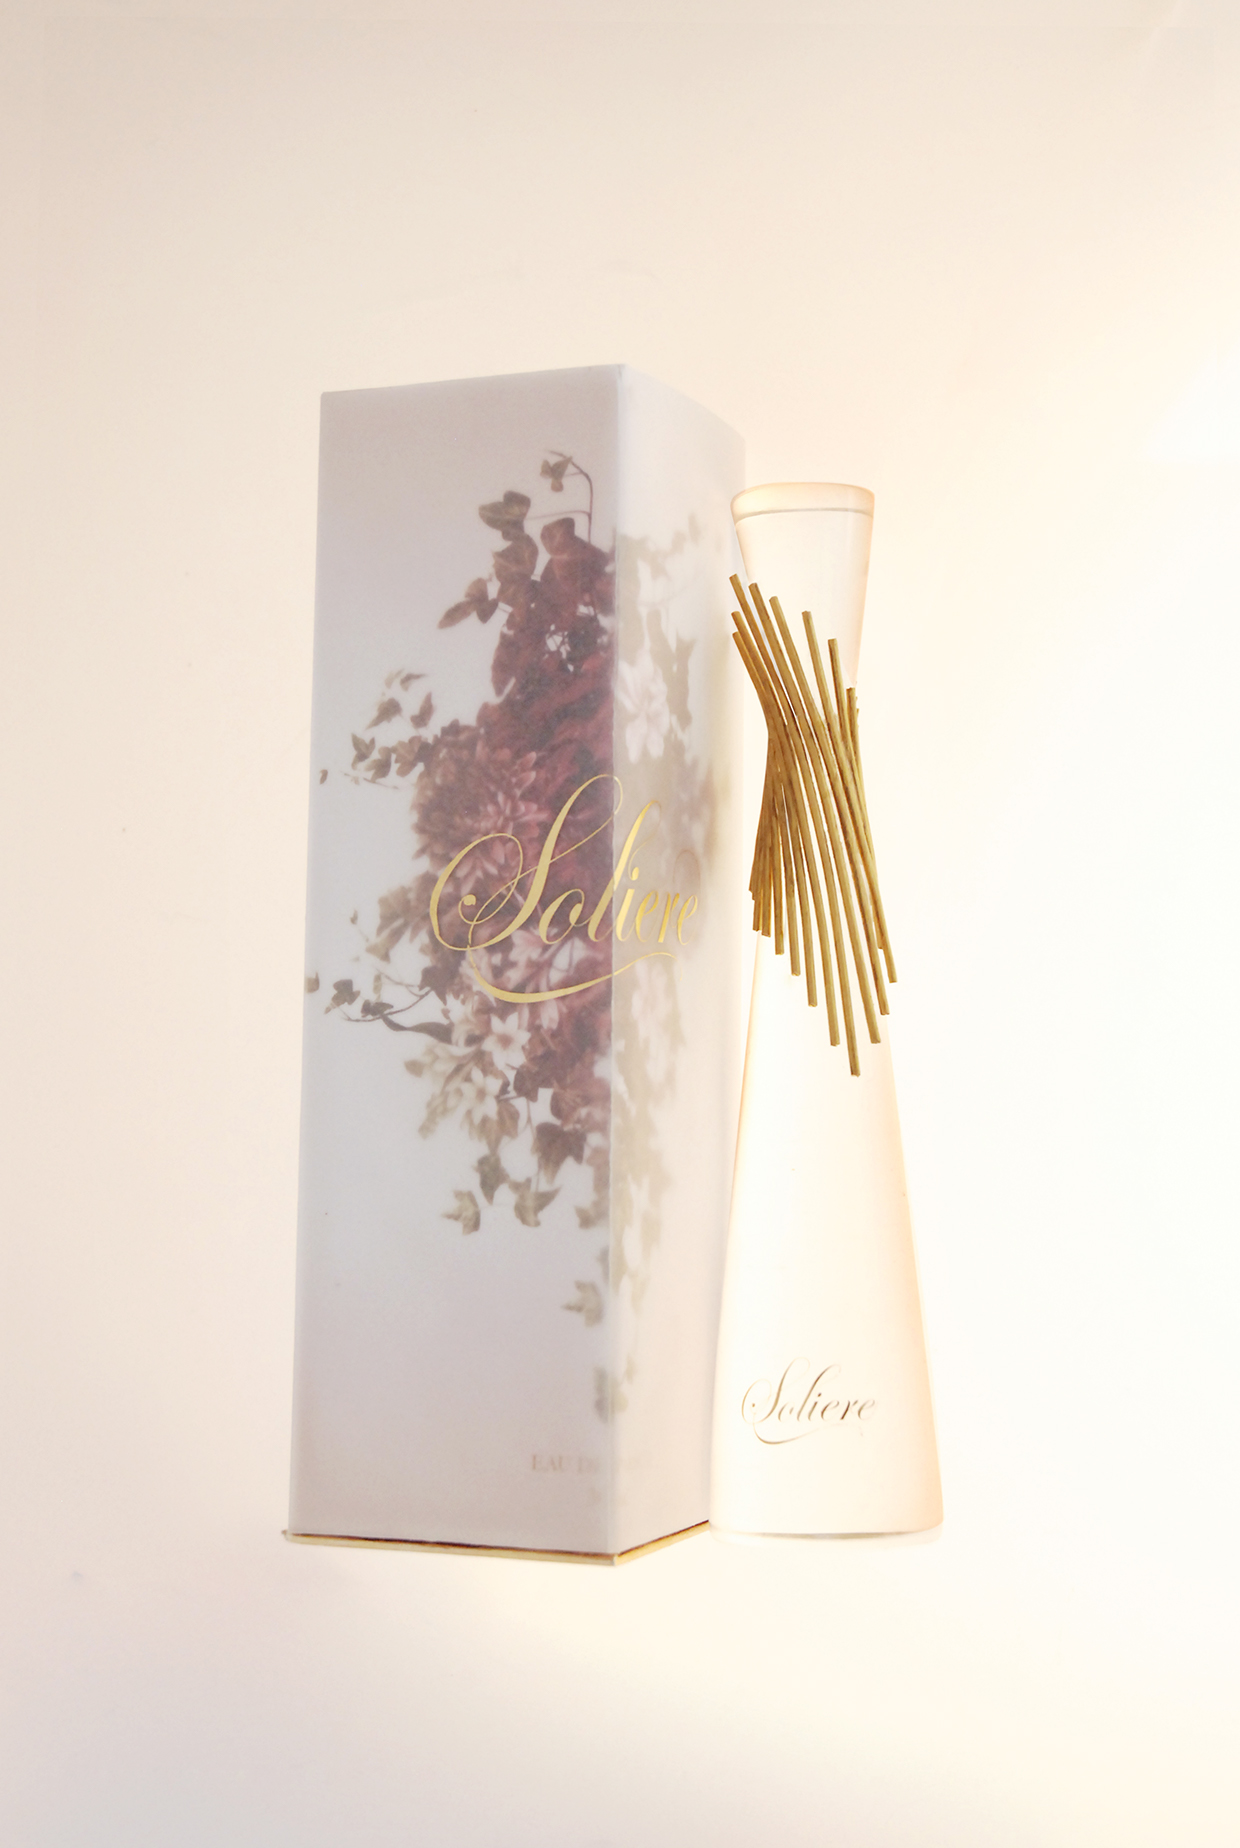 Soliere Perfume